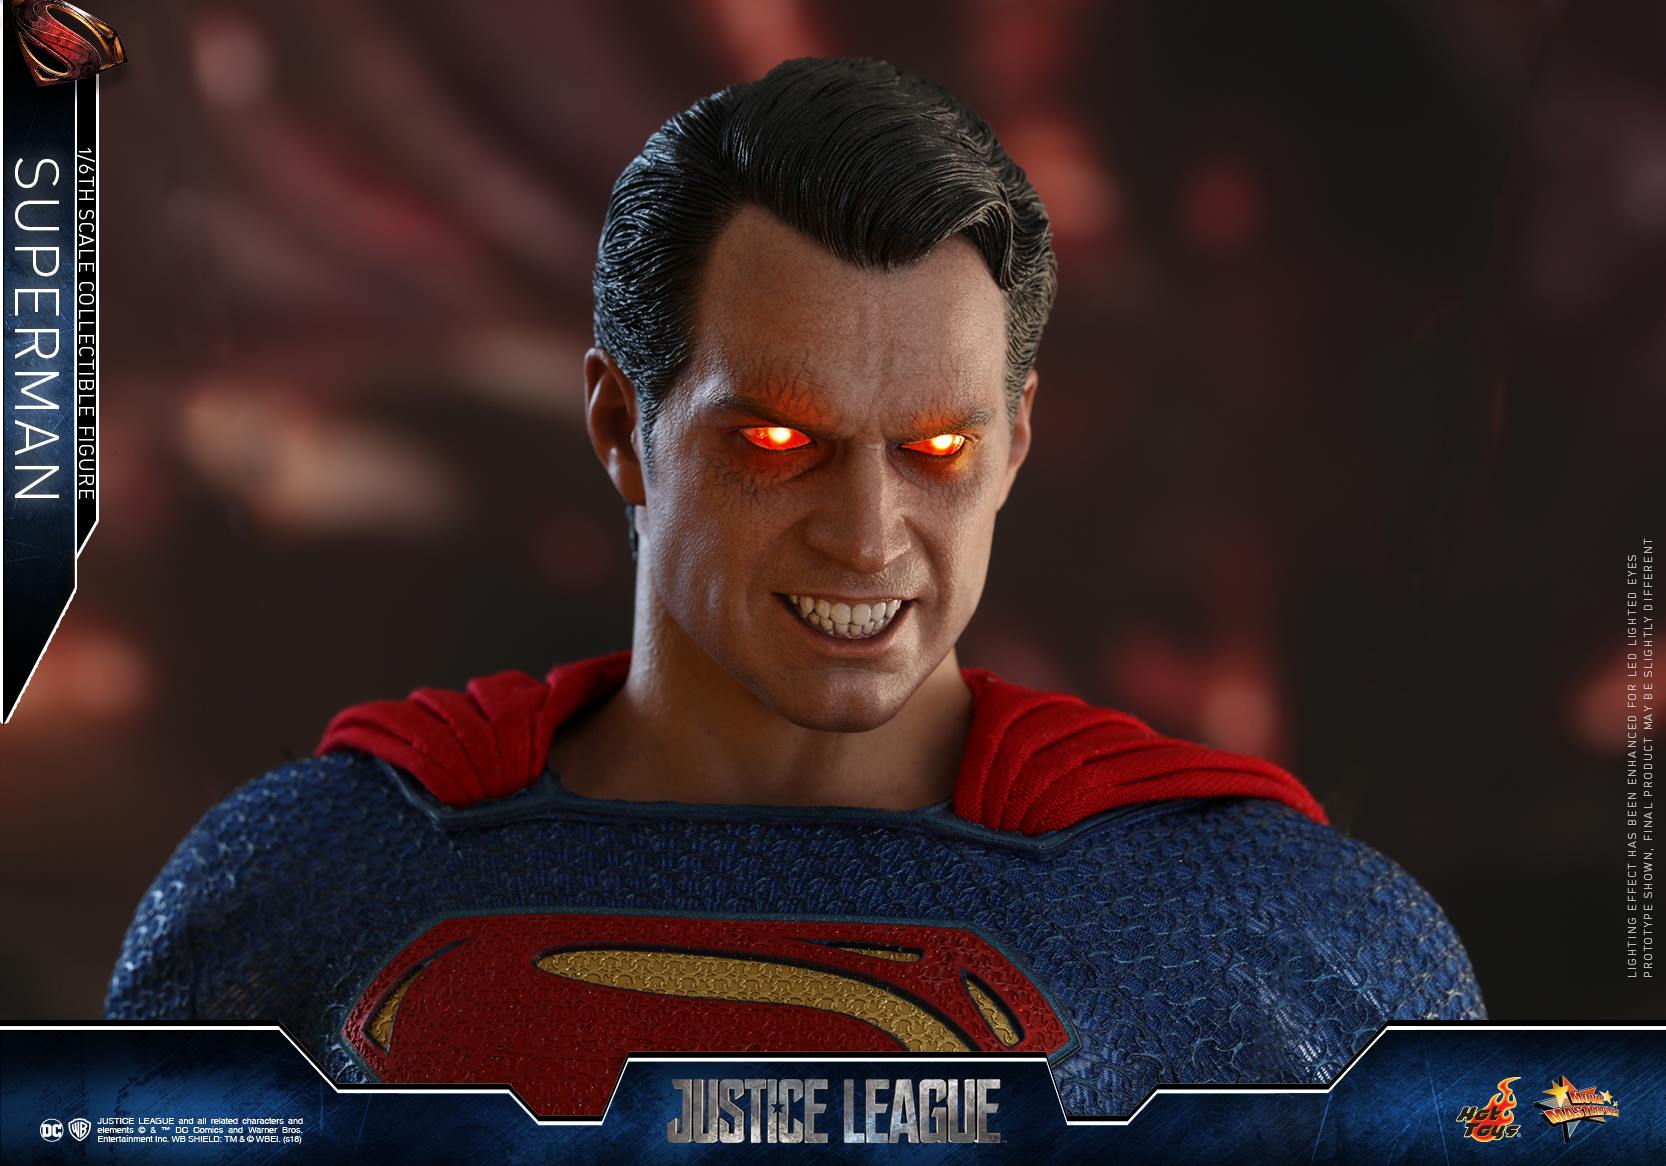 Hot Toys Justice League Superman Henry Cavill